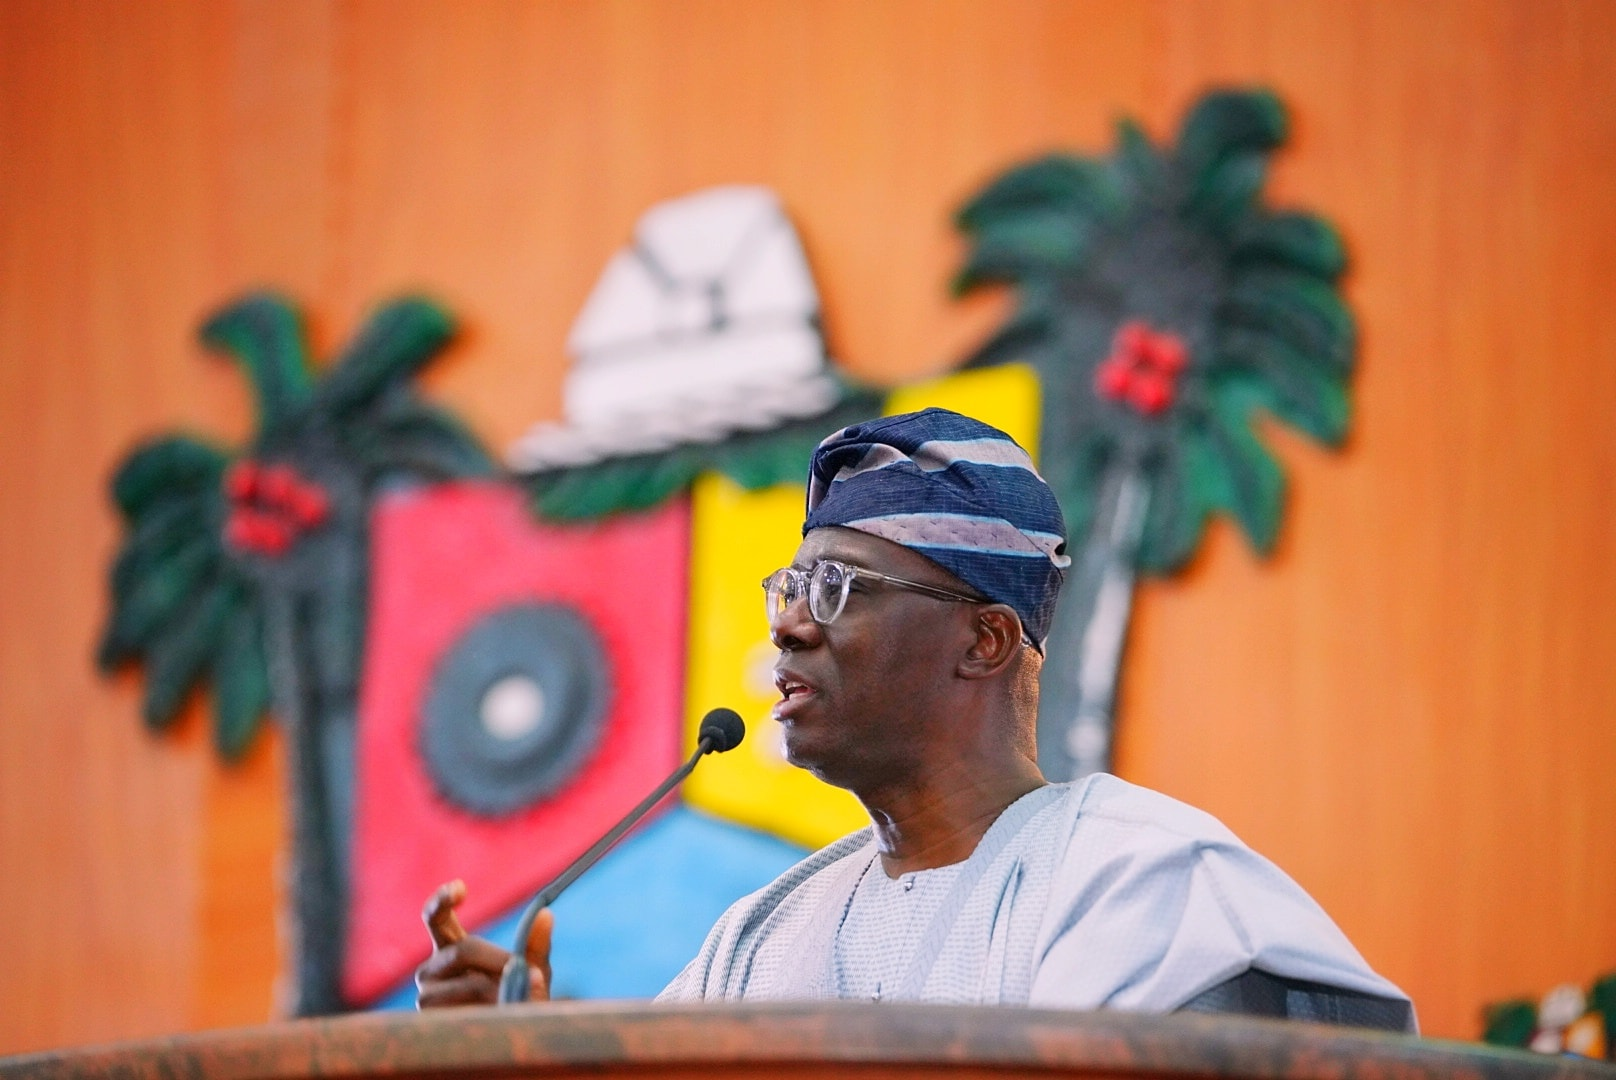 Lagos: Sanwo-Olu Makes New Appointment